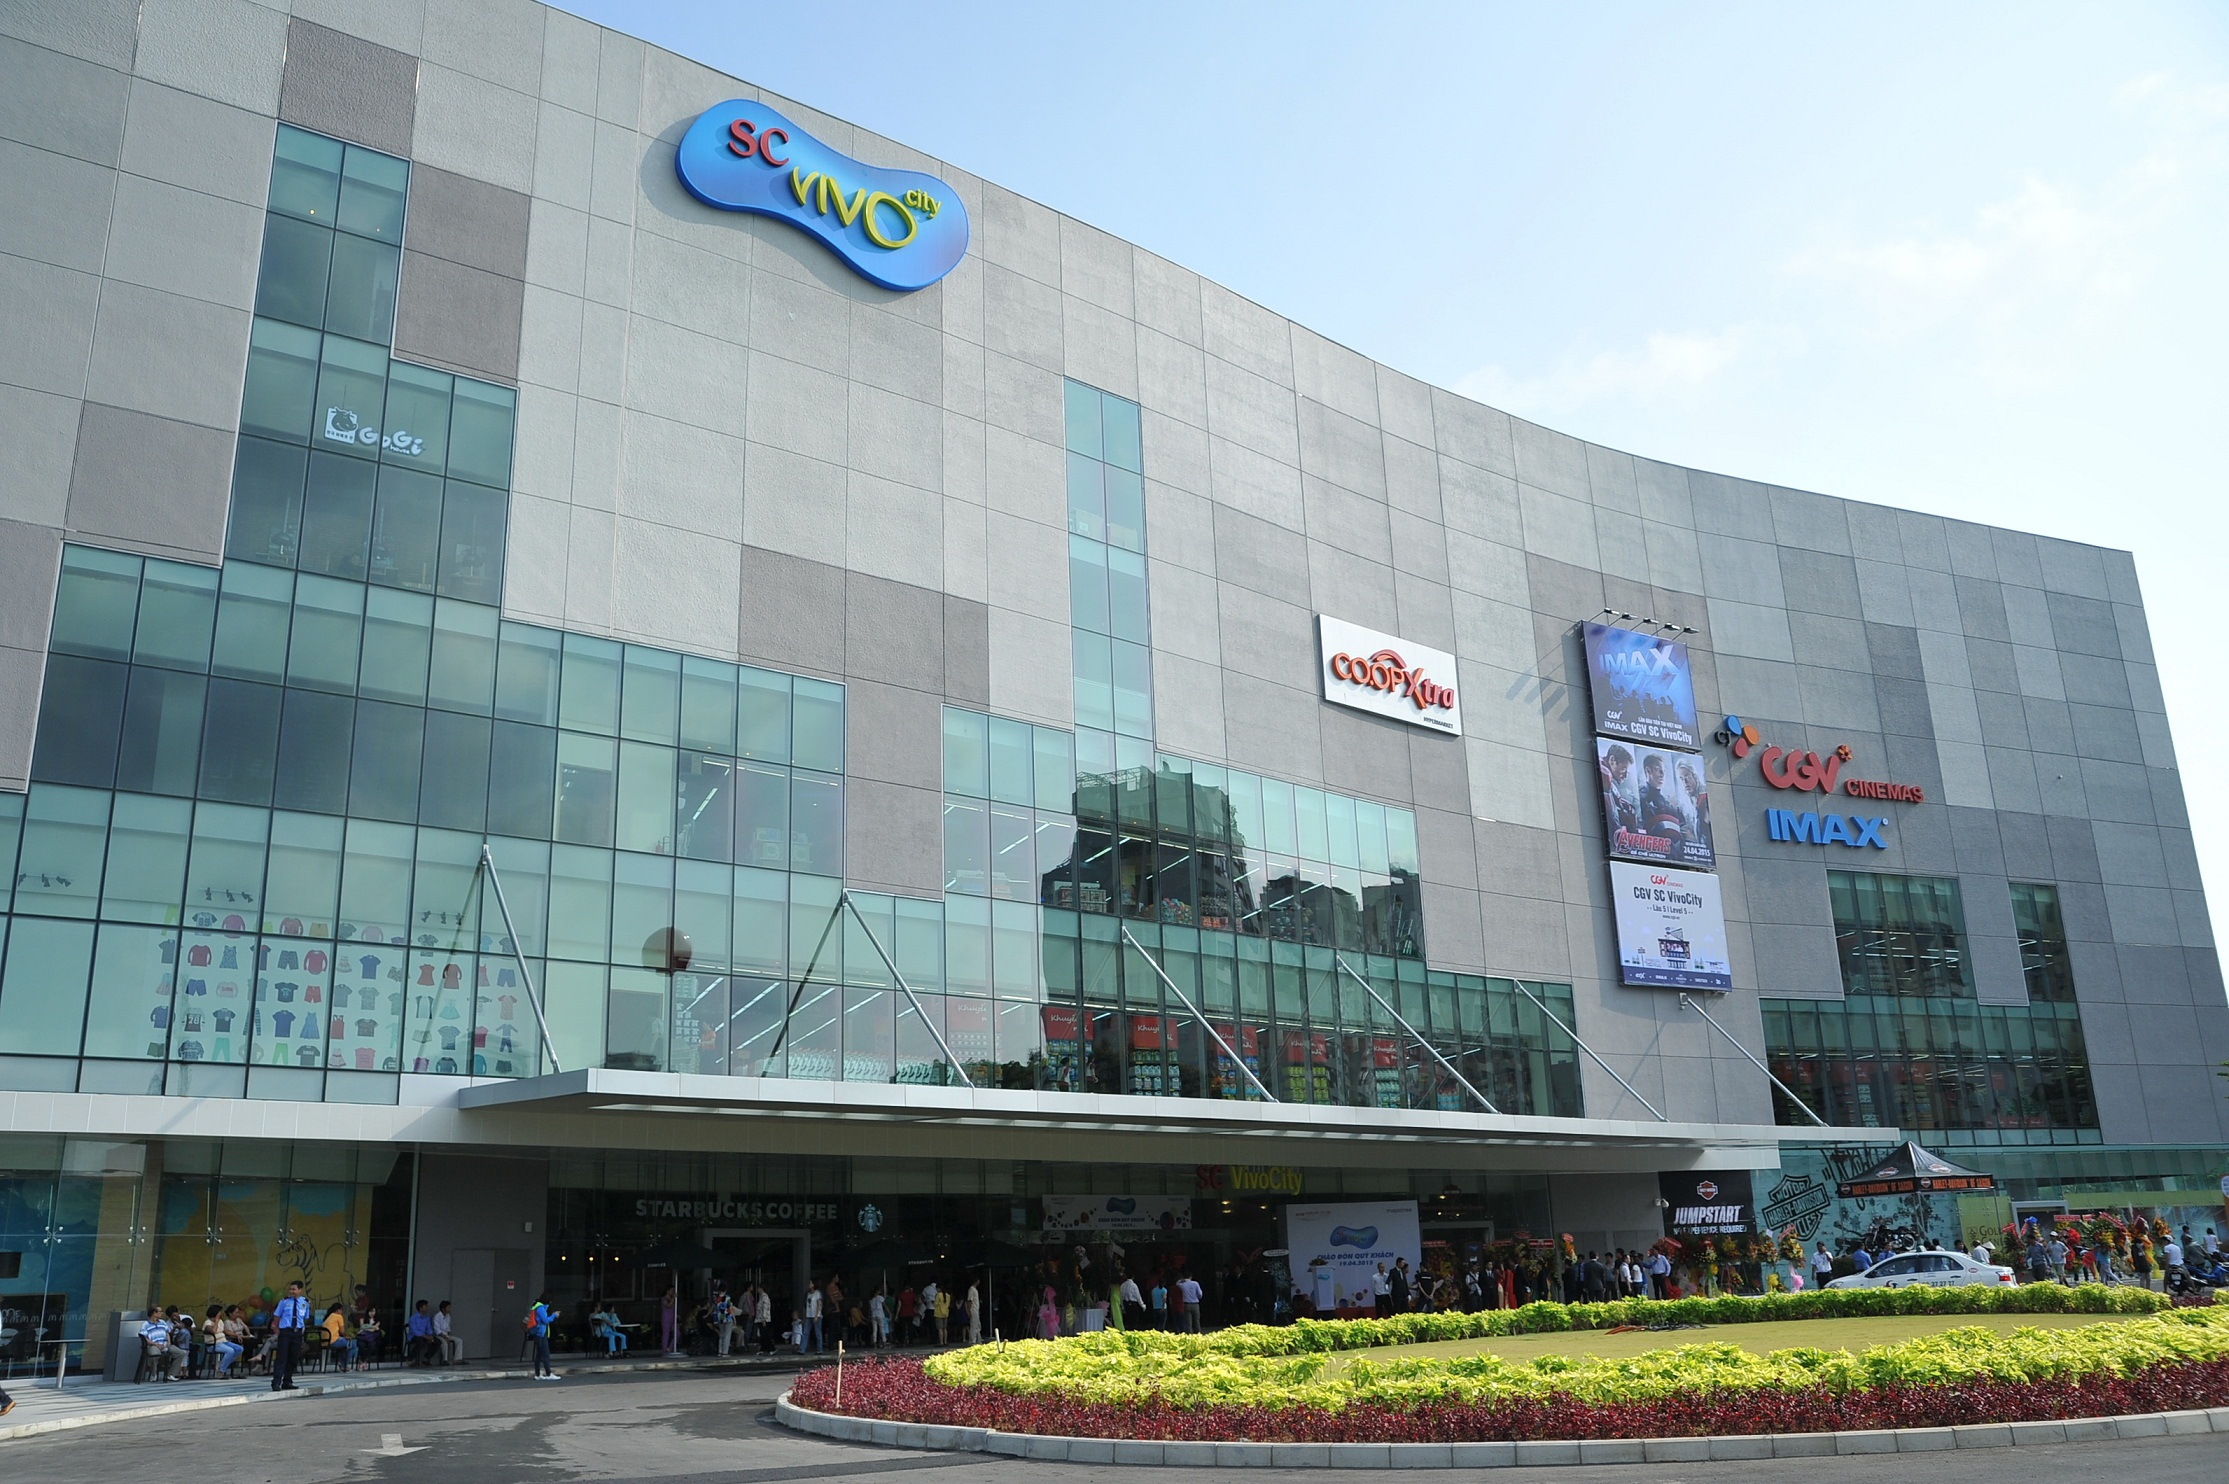 SC VivoCity welcomes about 60,000 arrivals on Soft Opening Day